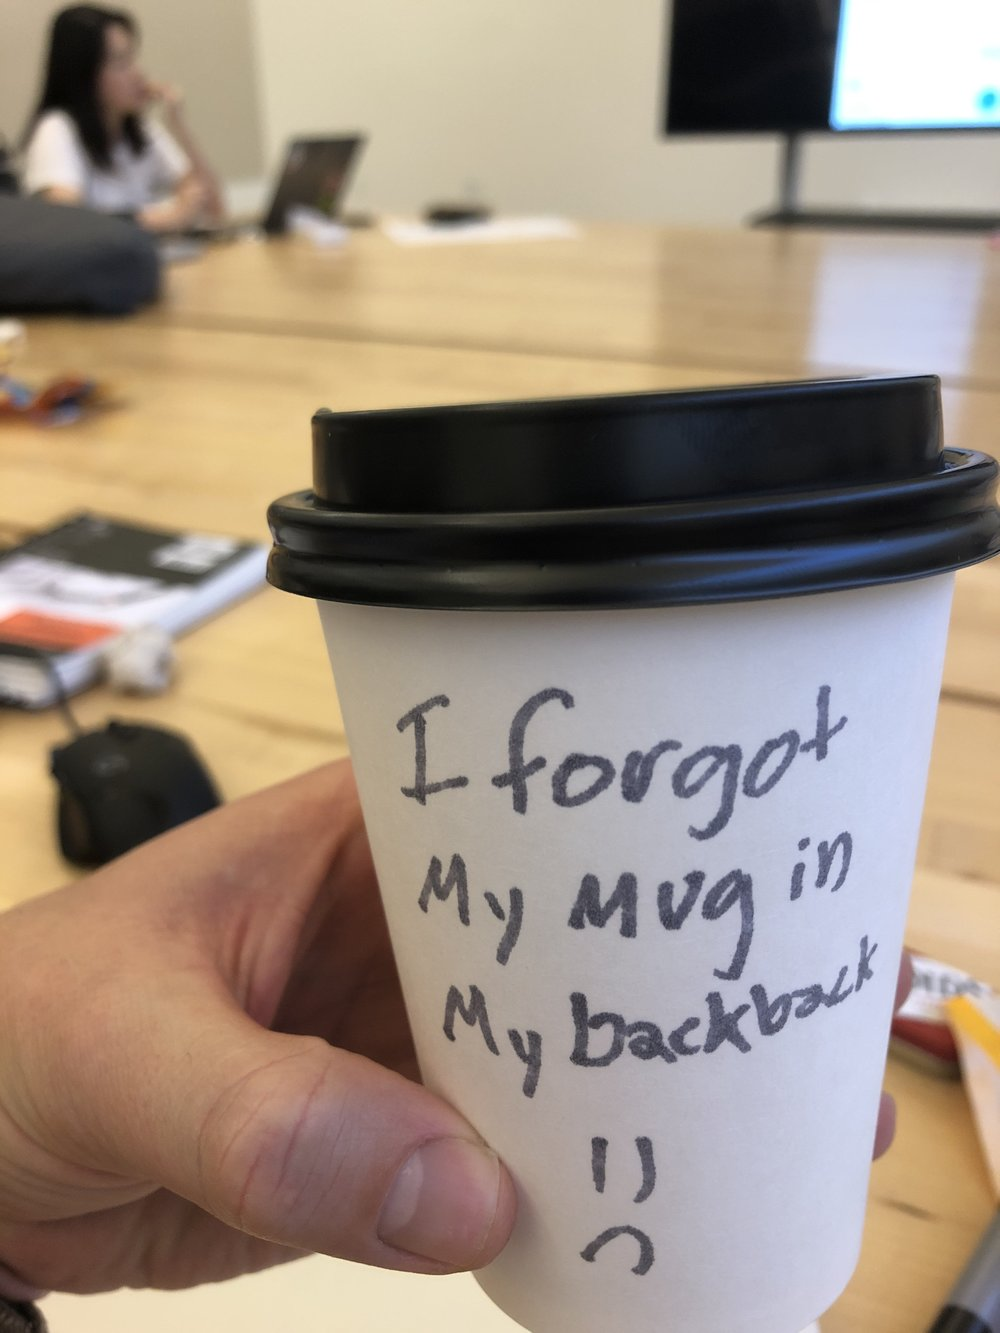 Challenging participants to use reusable cups instead of disposable ones for a week